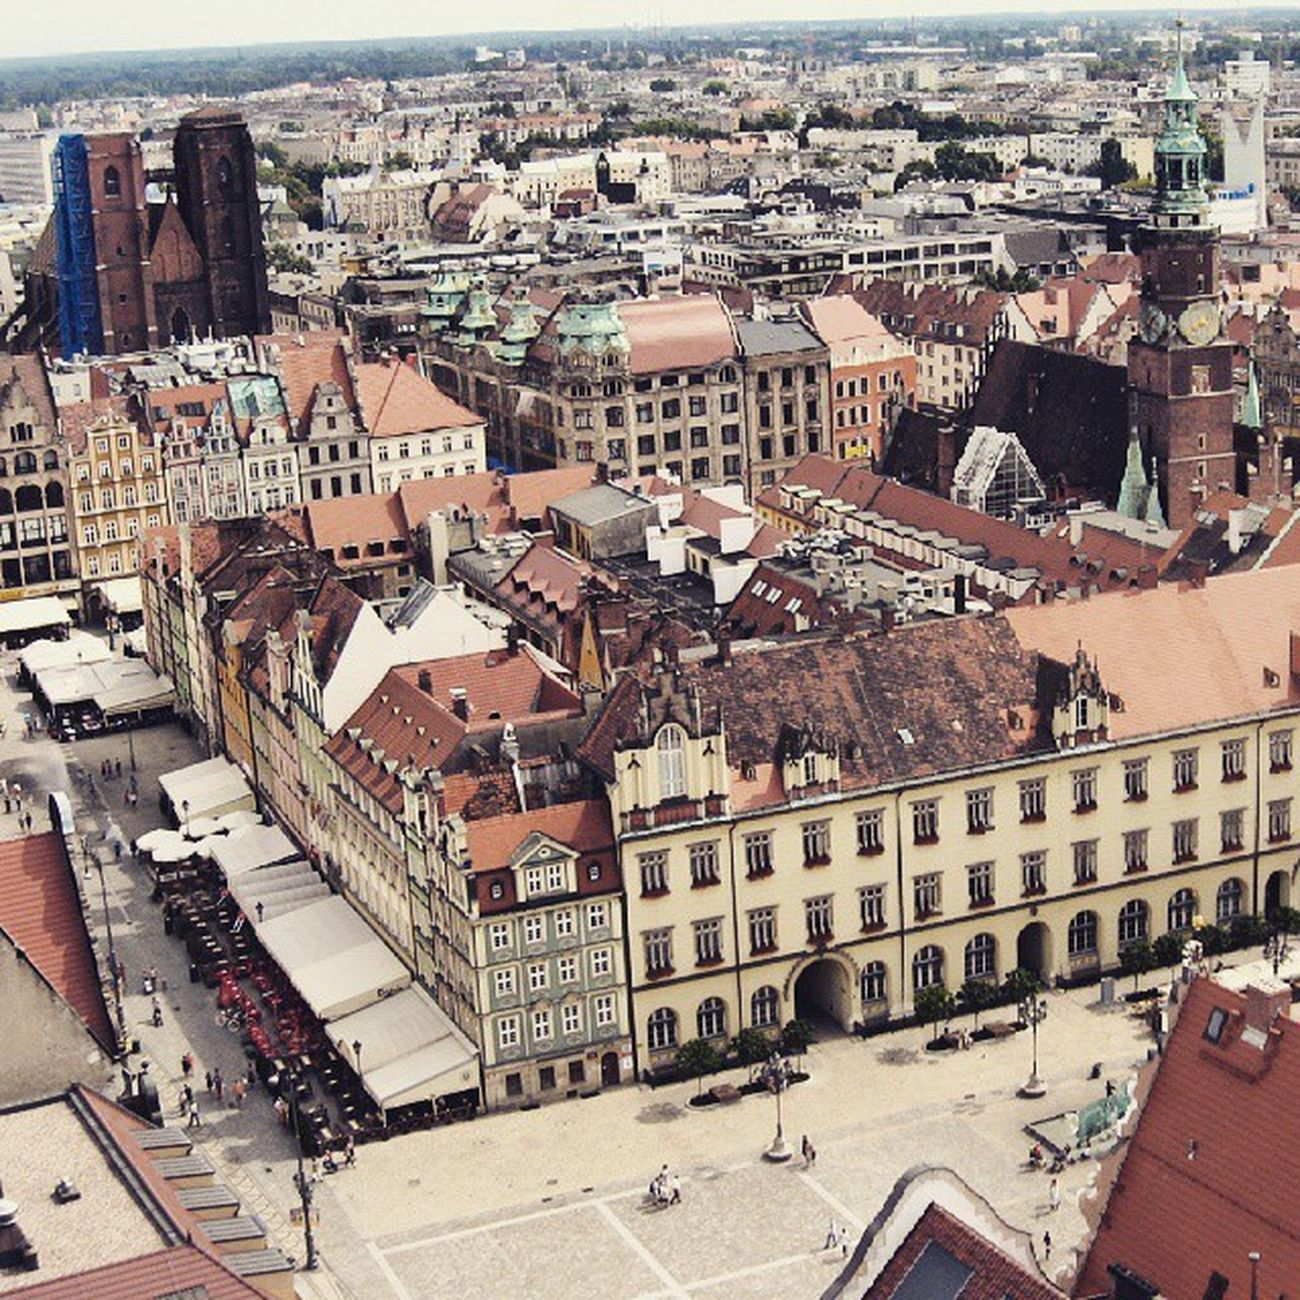 Wroclaw, Poland @Instag_app Travel Traveling Instag_app Vacation visiting instatravel instago instagood trip holiday photooftheday fun travelling tourism tourist instapassport instatraveling mytravelgram travelgram travelingram igtravel